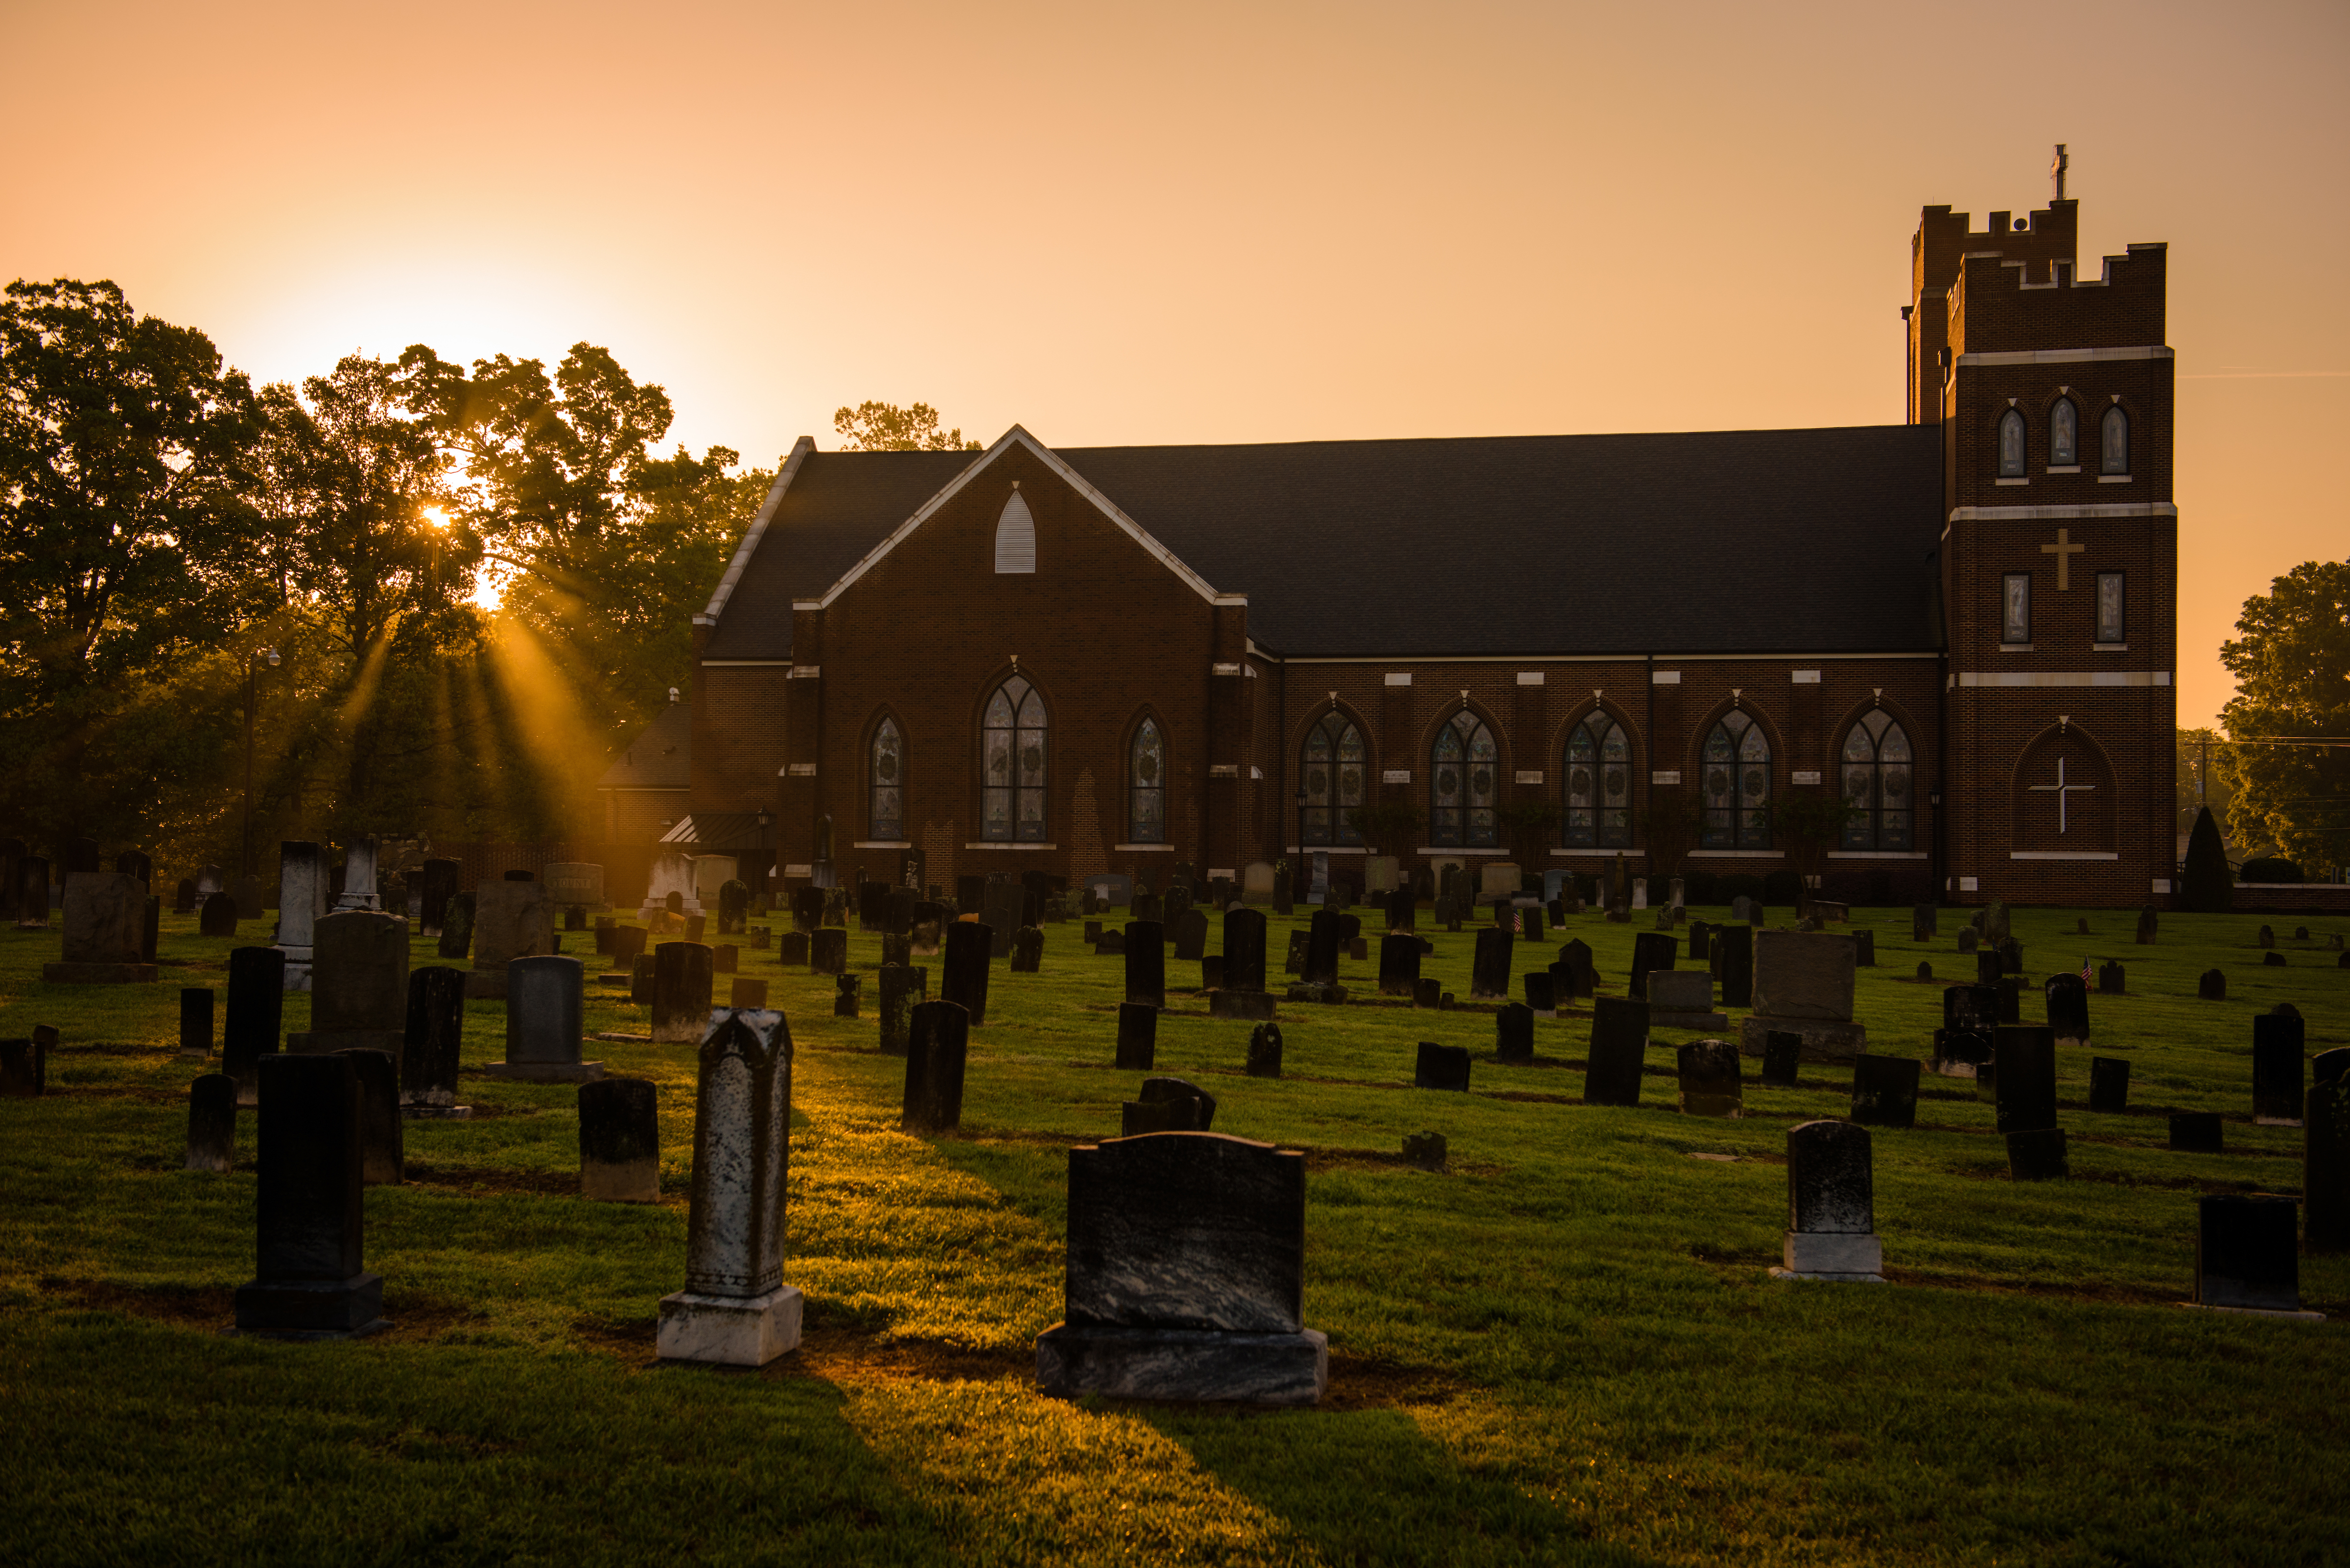 Sunrise over the cemetery at St. John's Lutheran Church, Conover, N.C, on Saturday, April 22, 2017, in Hickory, N.C. LCMS Communications/Erik M. Lunsford Sunrise over the cemetery at St. John's Lutheran Church, Conover, N.C, on Saturday, April 22, 2017. LCMS Communications/Erik M. Lunsford